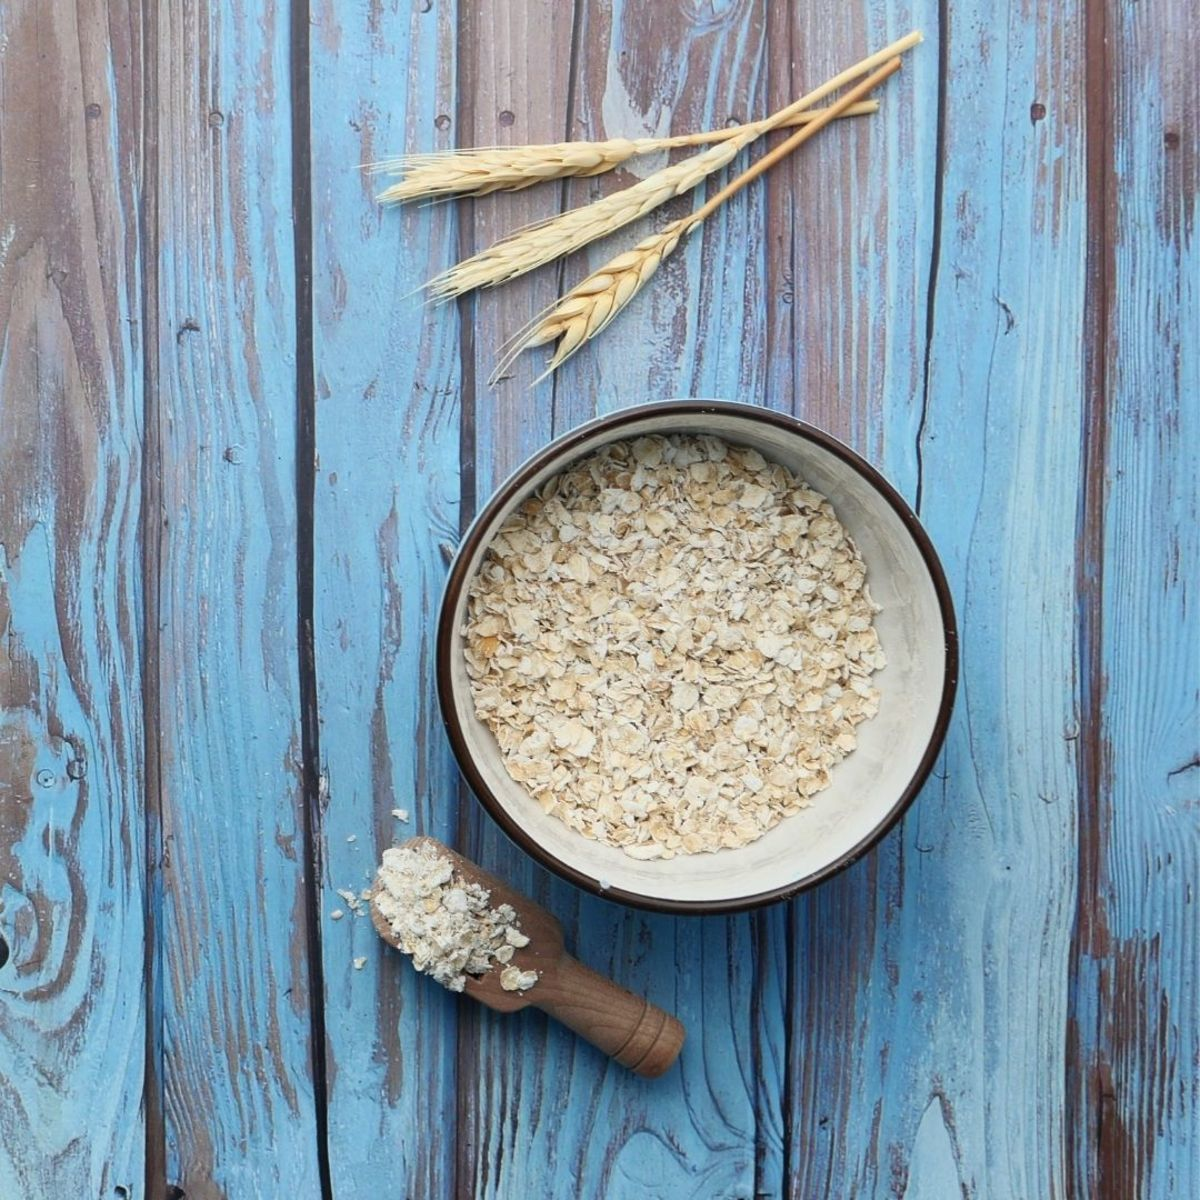 Oatmeal is a source of plenty of nutrients which are thought to have a positive effect on sleep quality.